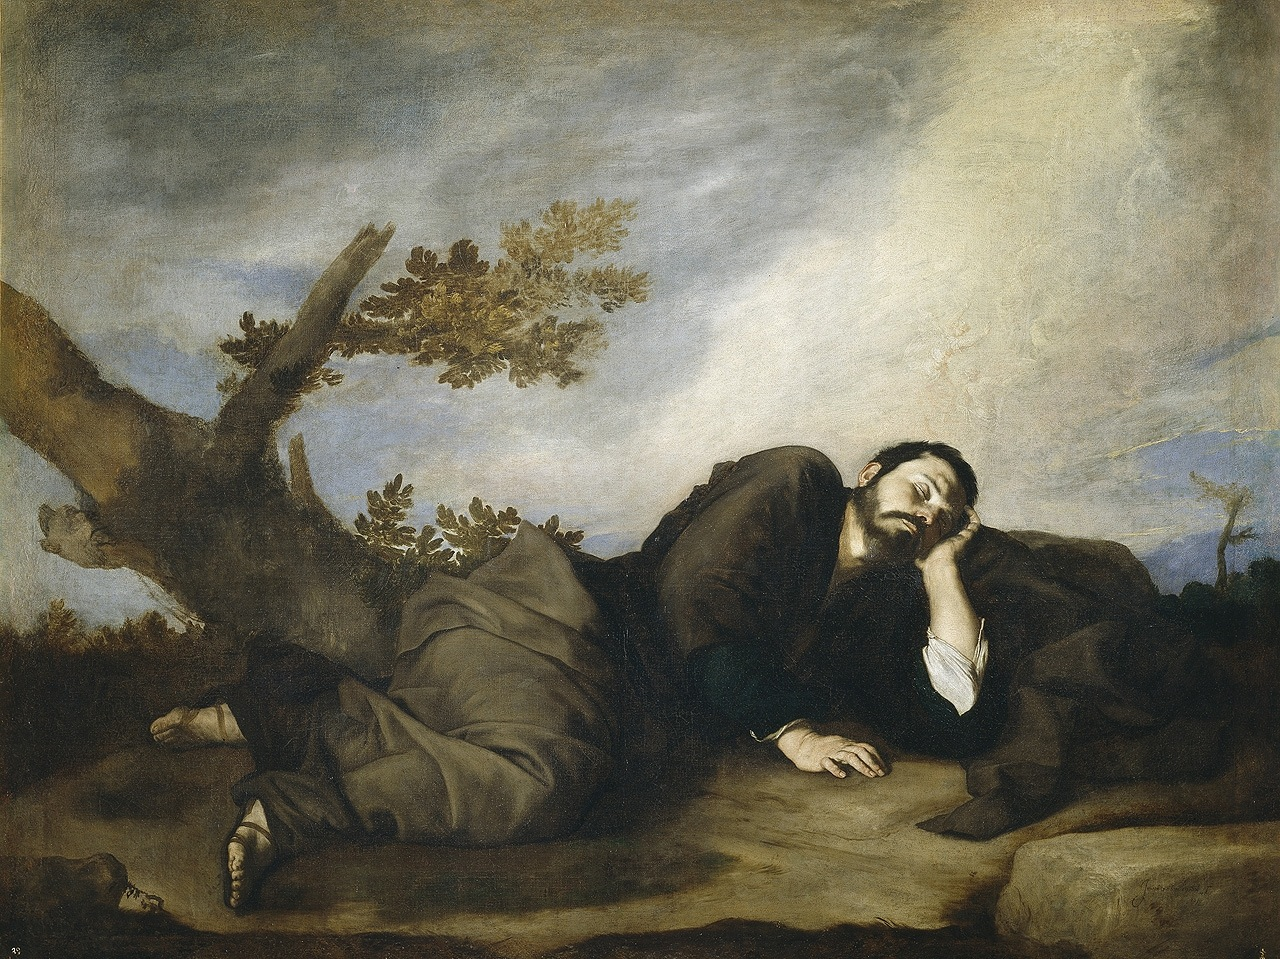 José de Ribera (Spanish, 1591-1652) El sueño de Jacob (1639) Oil on canvas. 179 by 233 cm. Museo Nacional del Prado, Madrid.